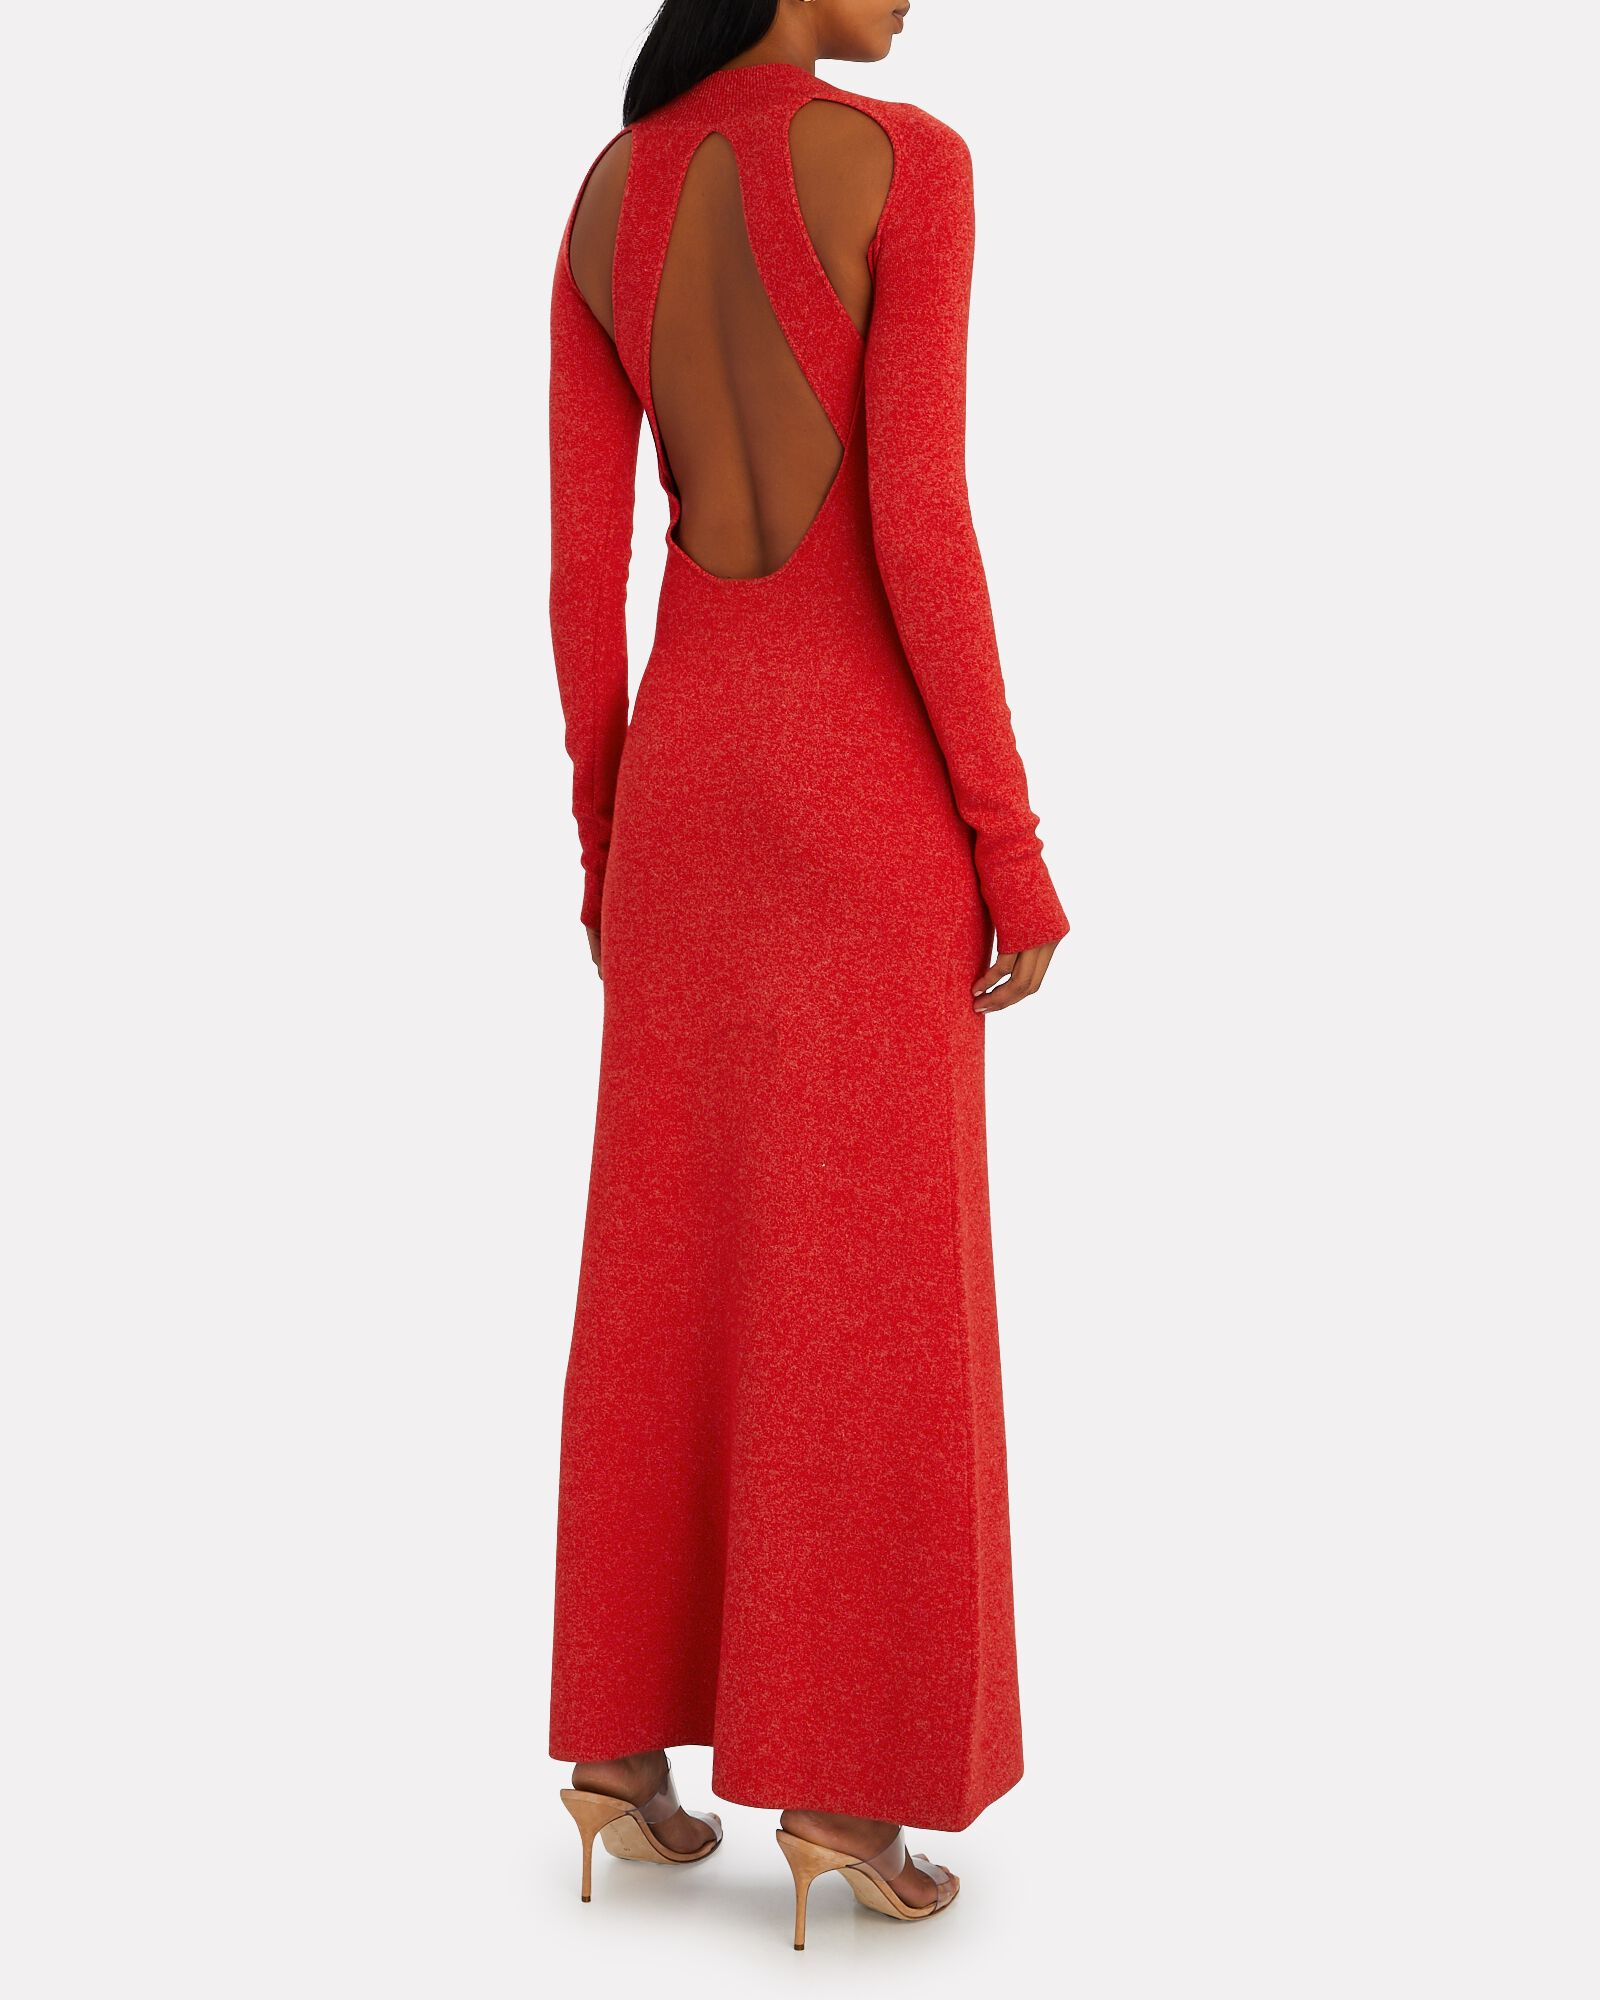 Cut-Out Merino Wool Sweater Dress, RED, hi-res